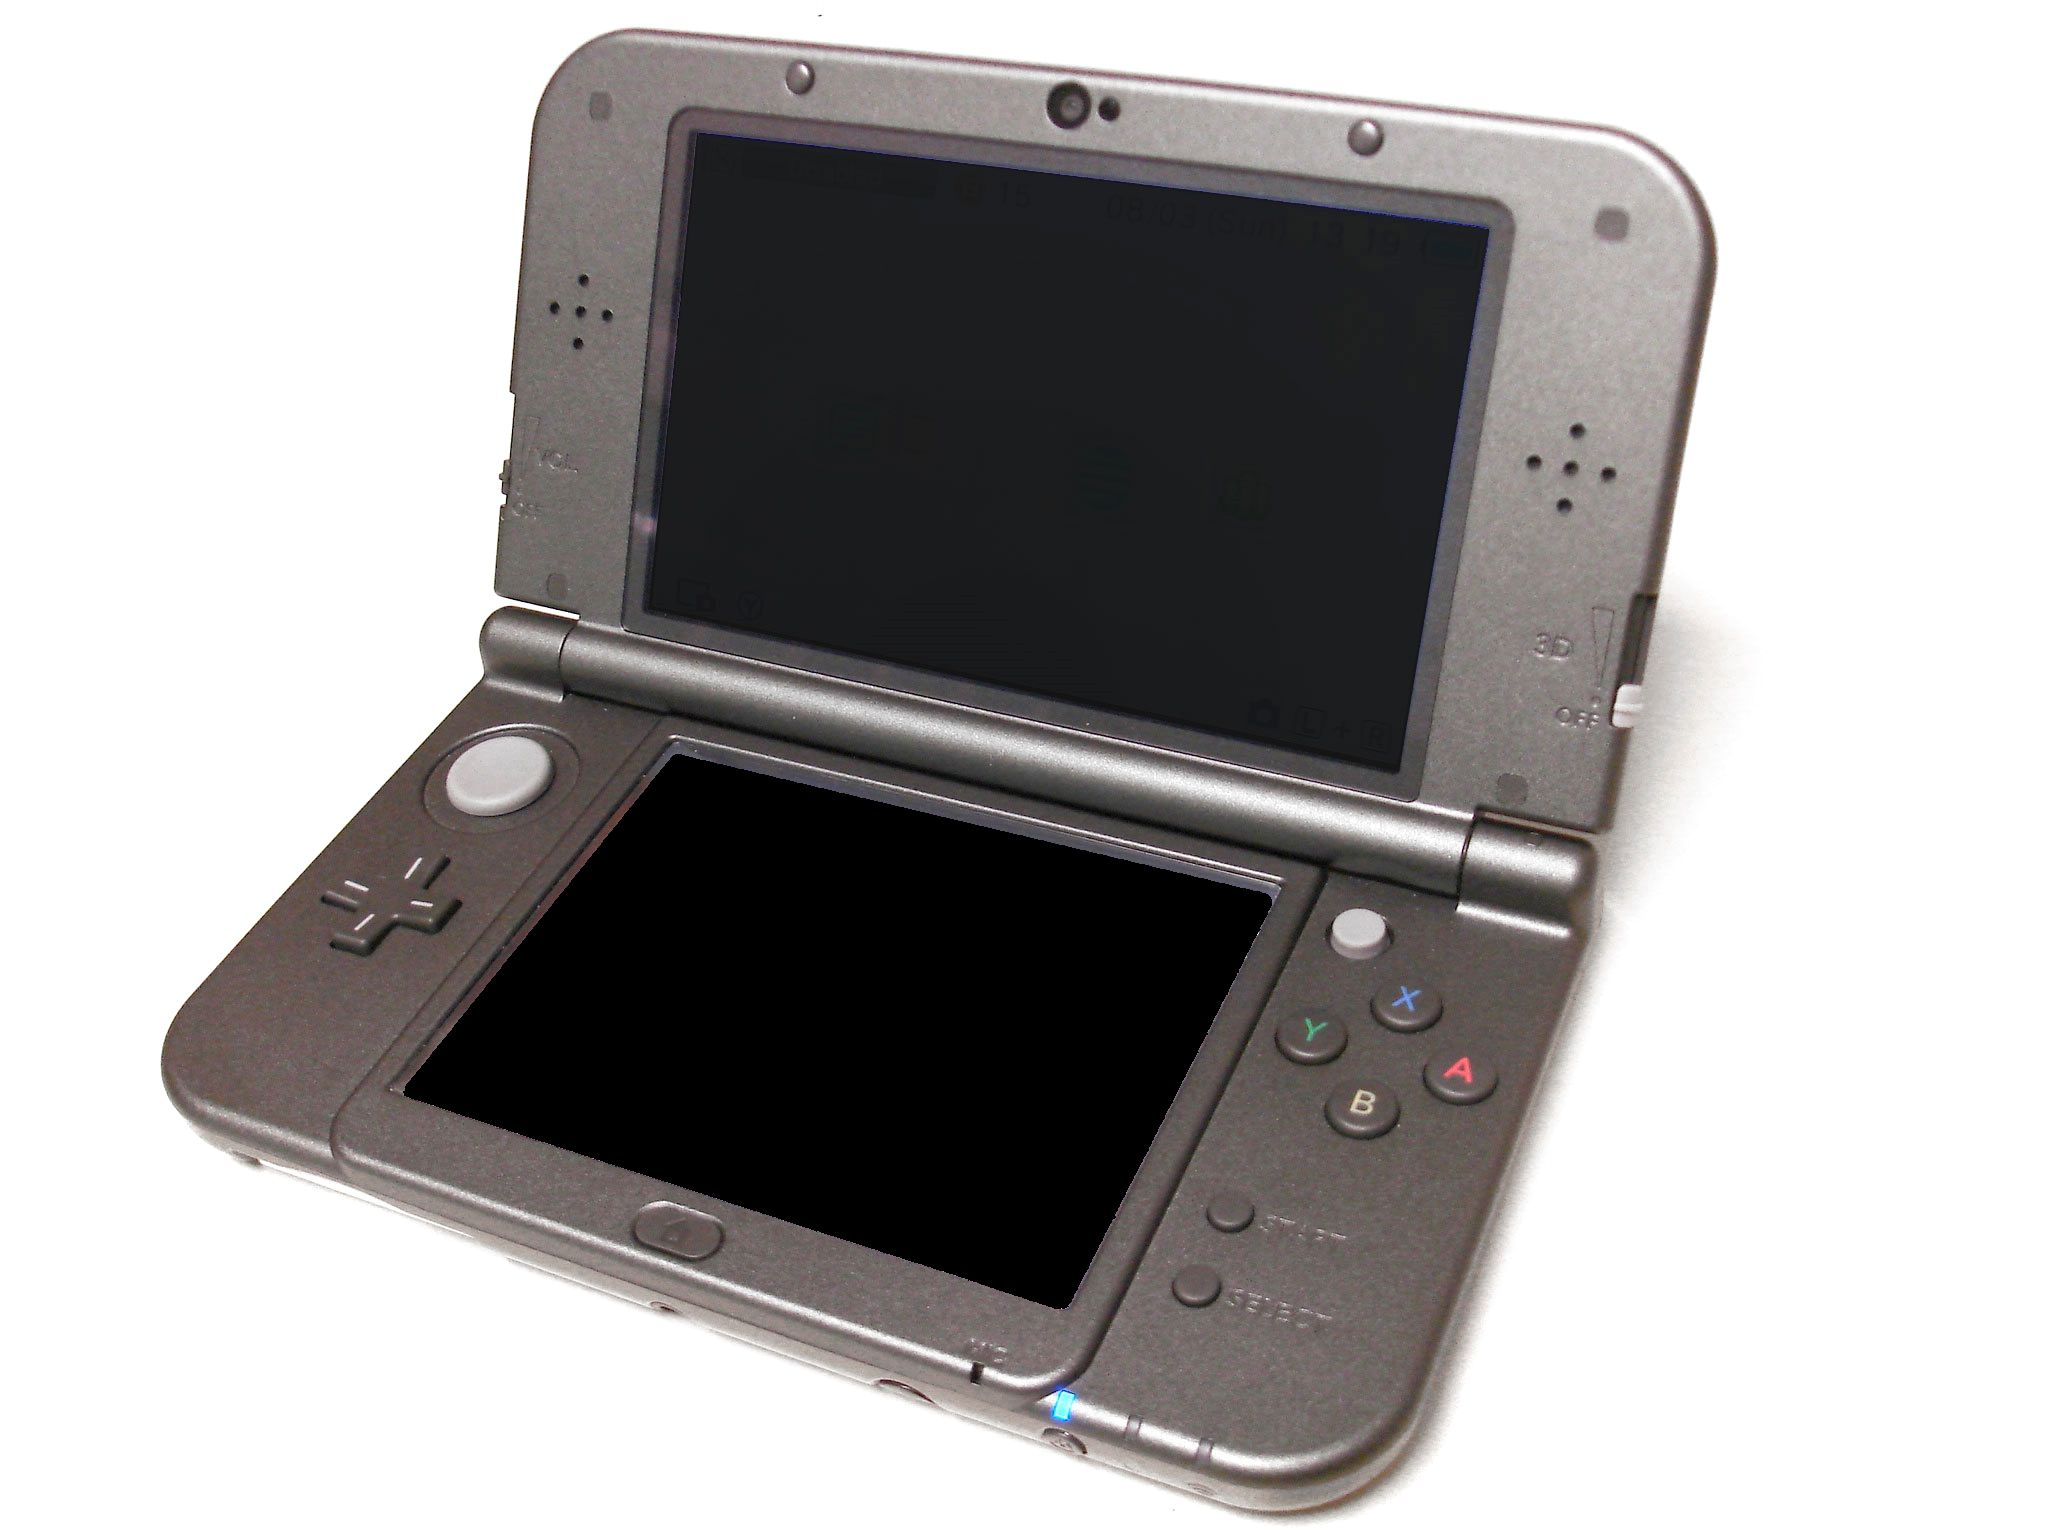 How to Take a Screenshot on Nintendo 3DS